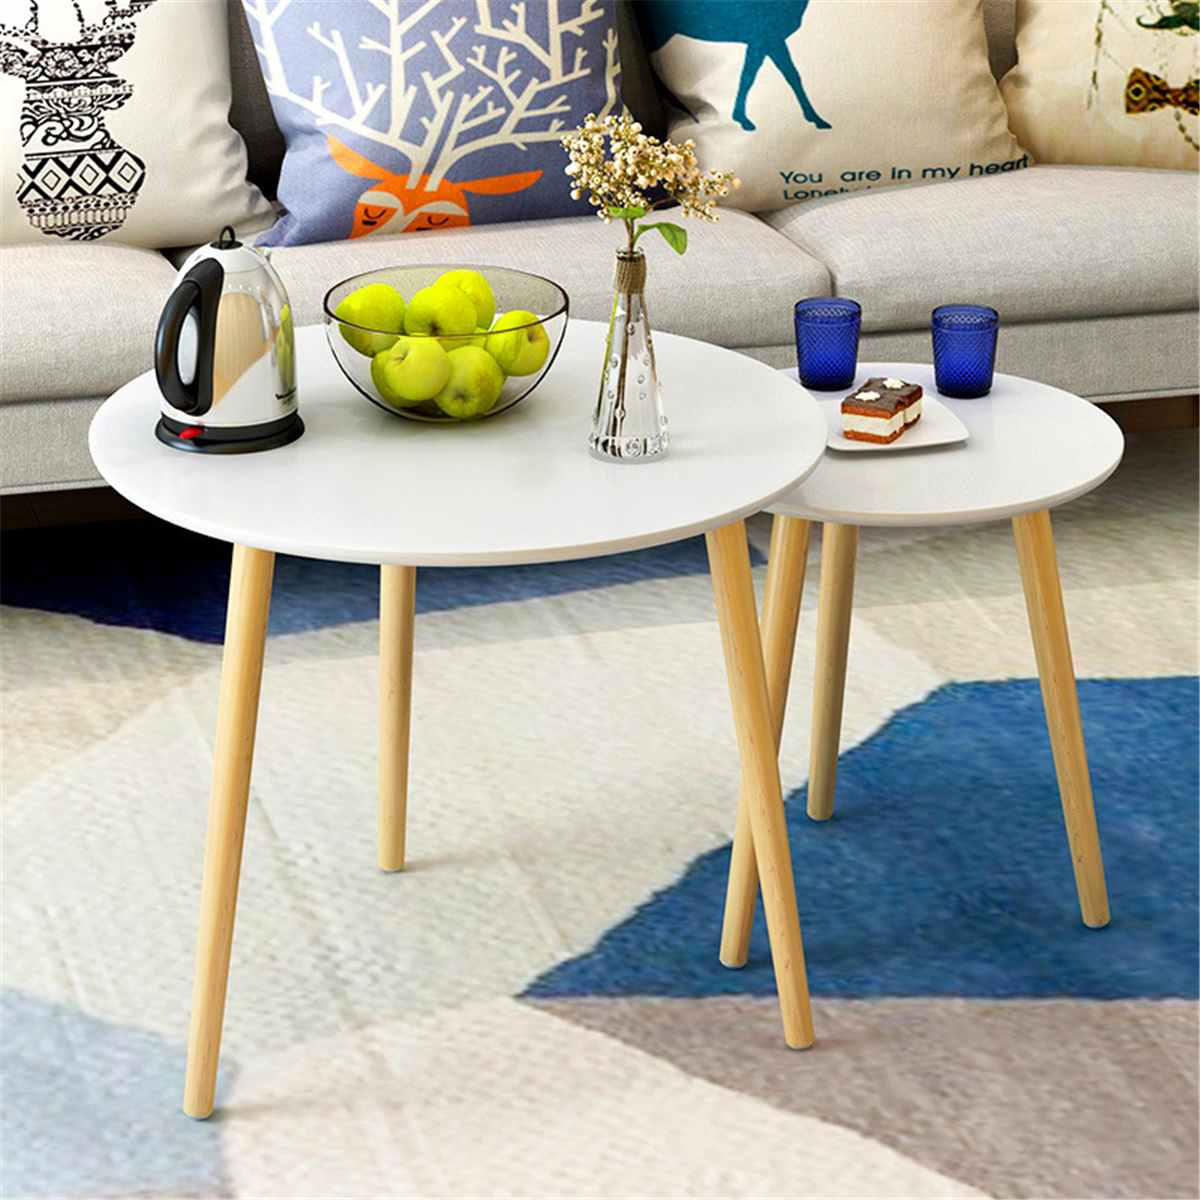 Coffee Table To Dining Table.Us 50 22 52 Off Modern Bedside Dining Table Coffee Desk Wood Legs Home Office Funiture Bar Cafe Furniture Decoration 50x49cm Round Triangle In Cafe